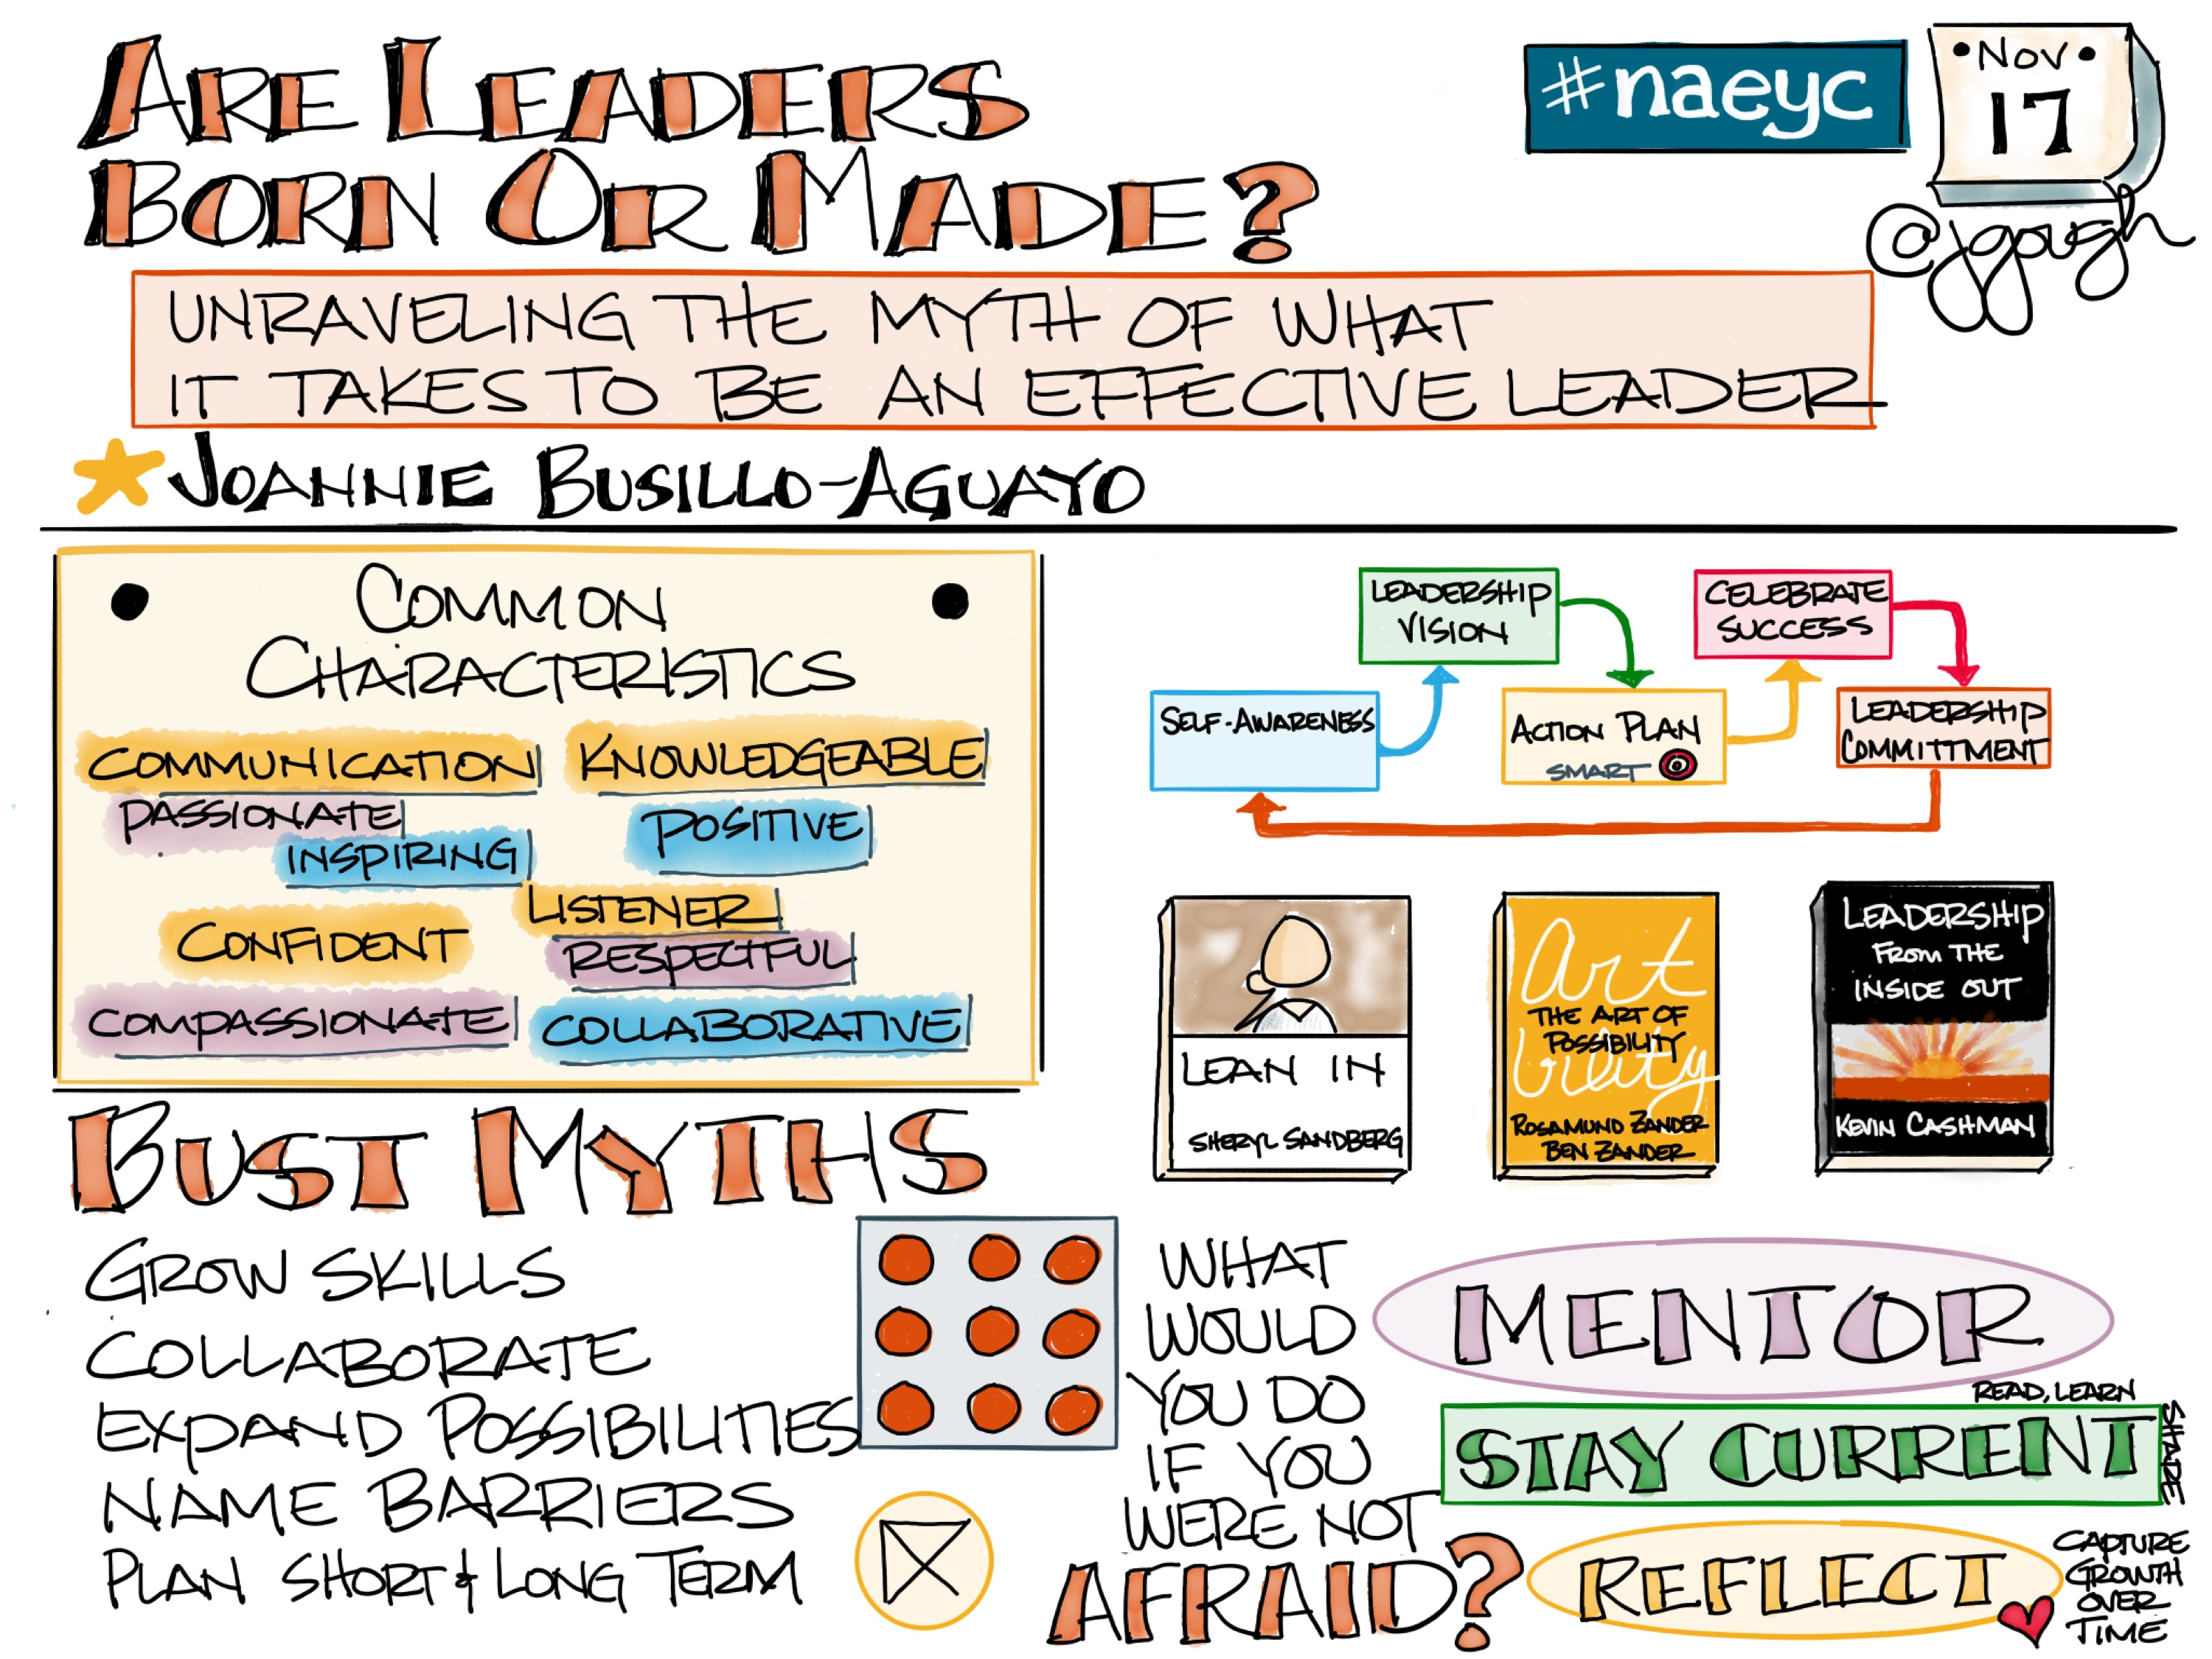 #NAEYC: Are Leaders Born or Made? Unraveling the Myth of What It Takes to be an Effective Leader – Joannie Busillo-Aguayo